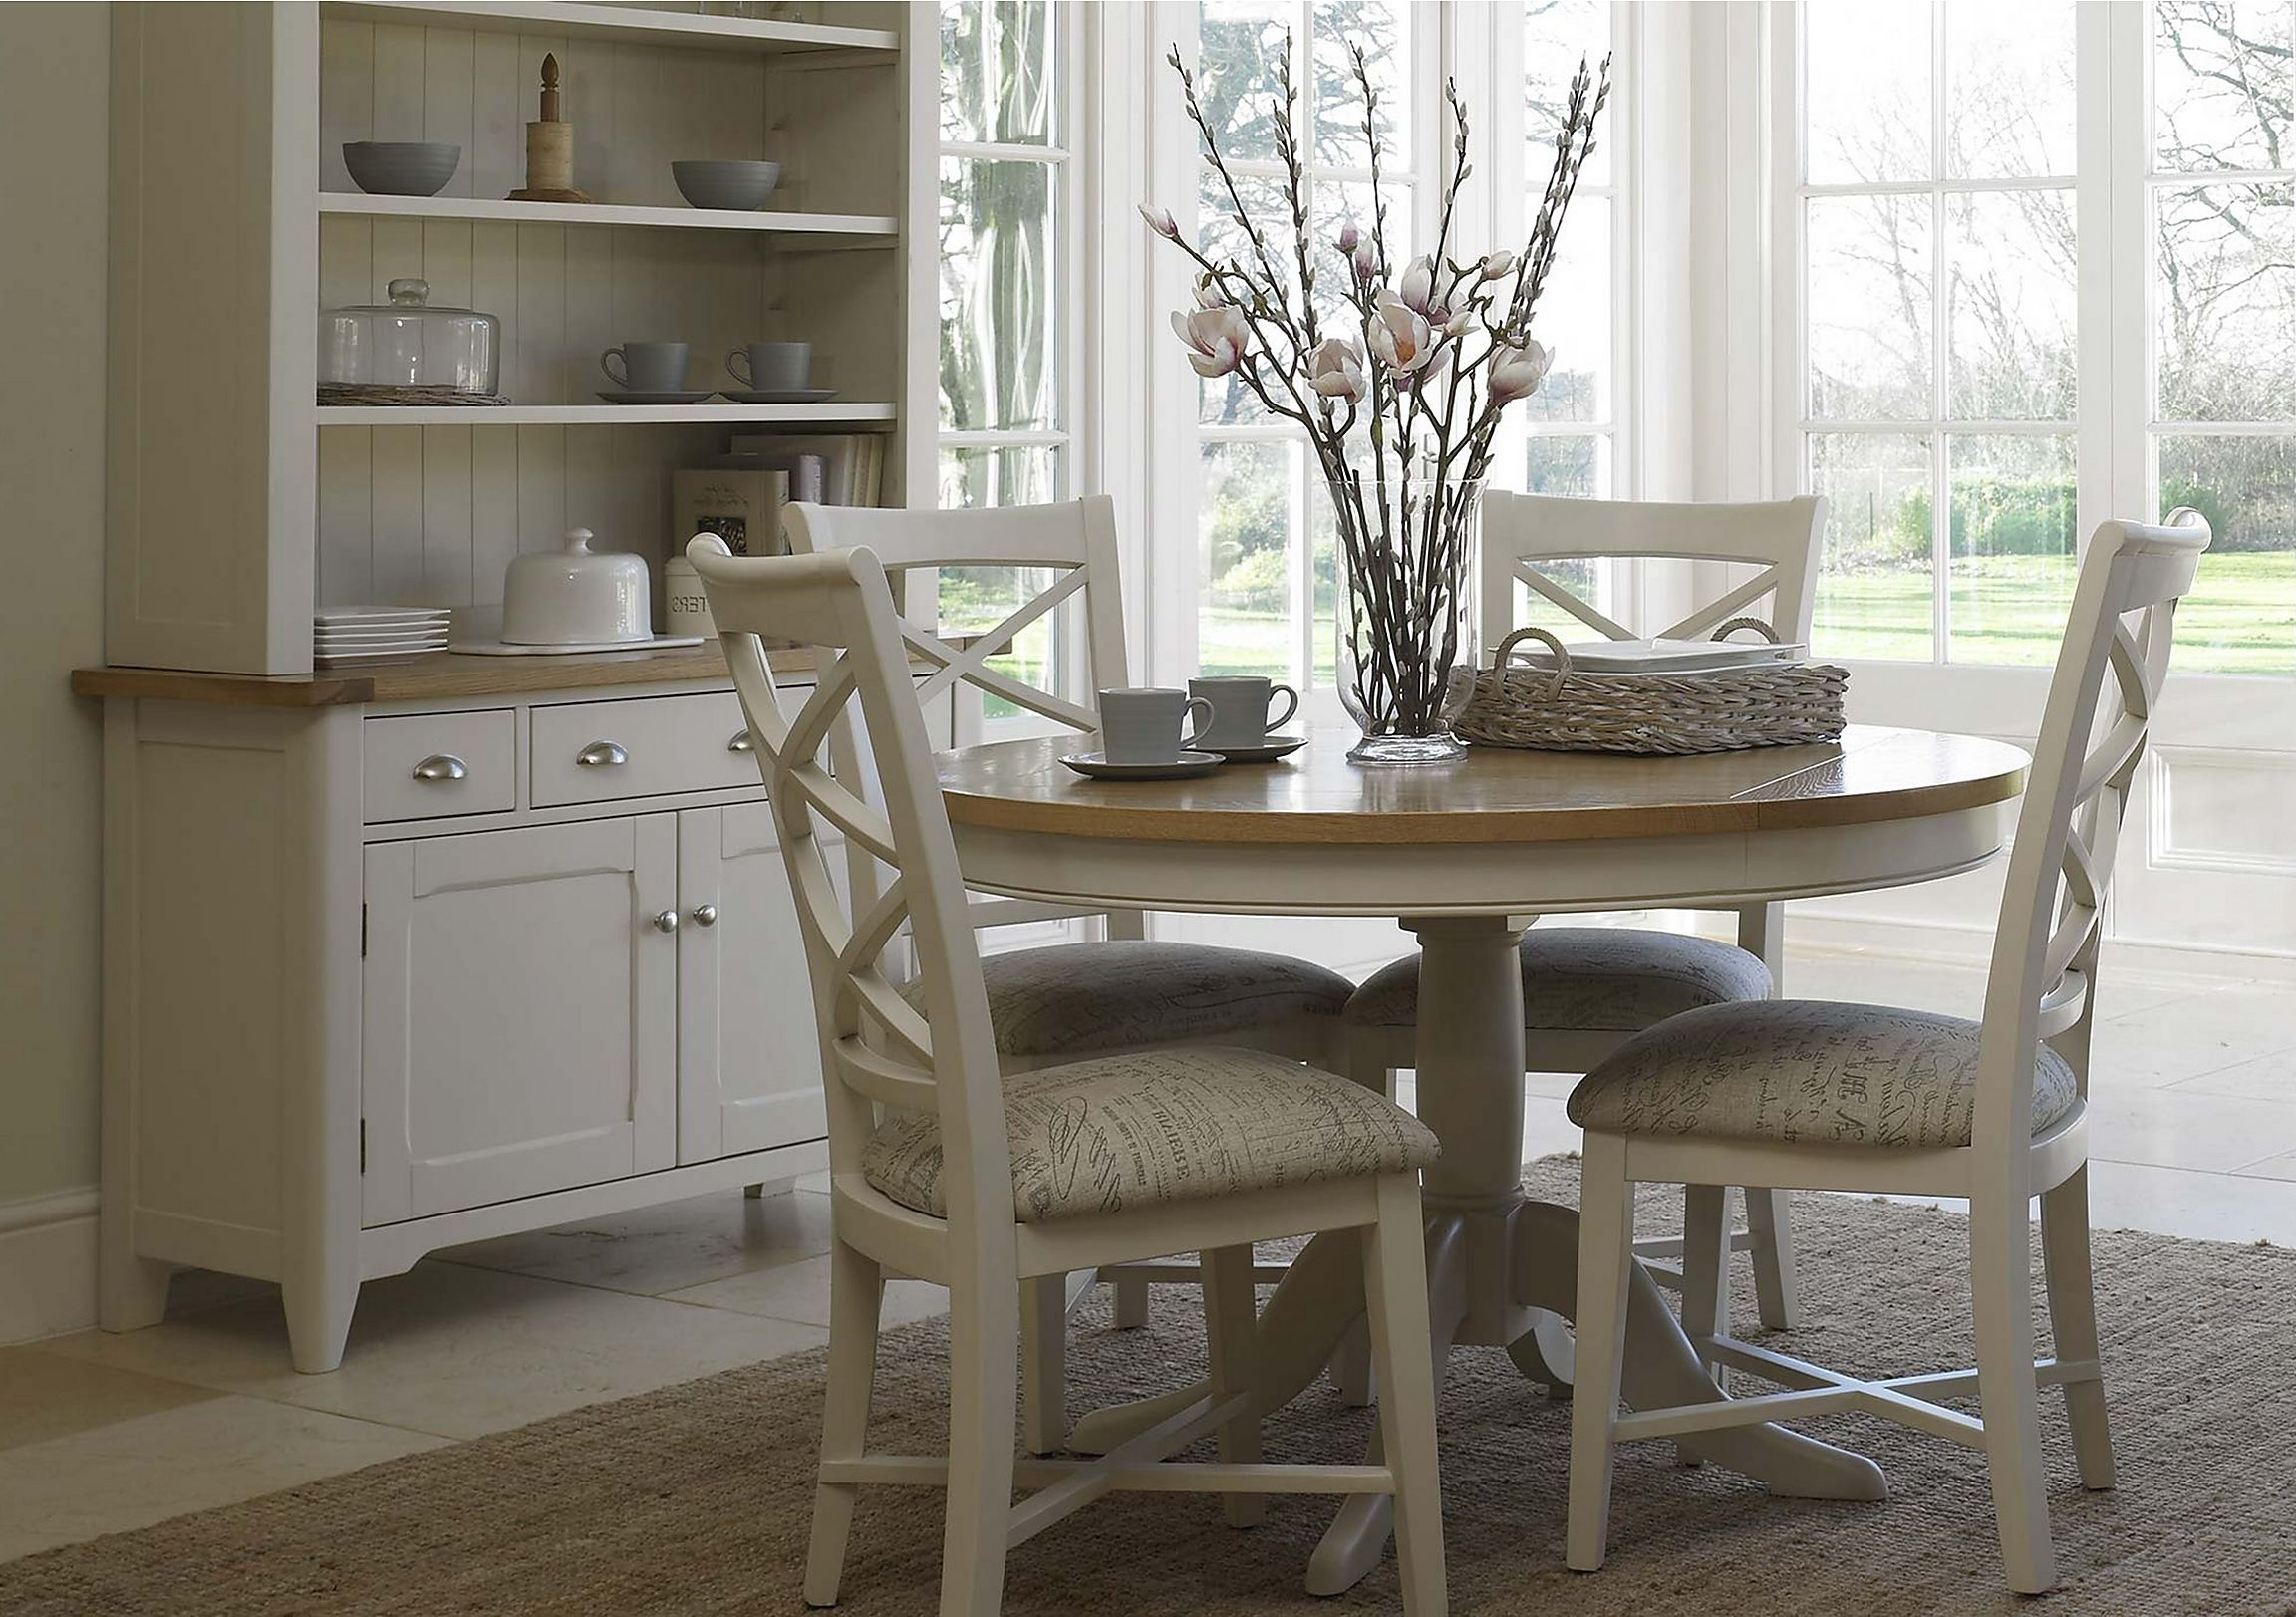 Donato 4 Seater Dining Table Throughout Popular Small 4 Seater Dining Tables (View 16 of 25)